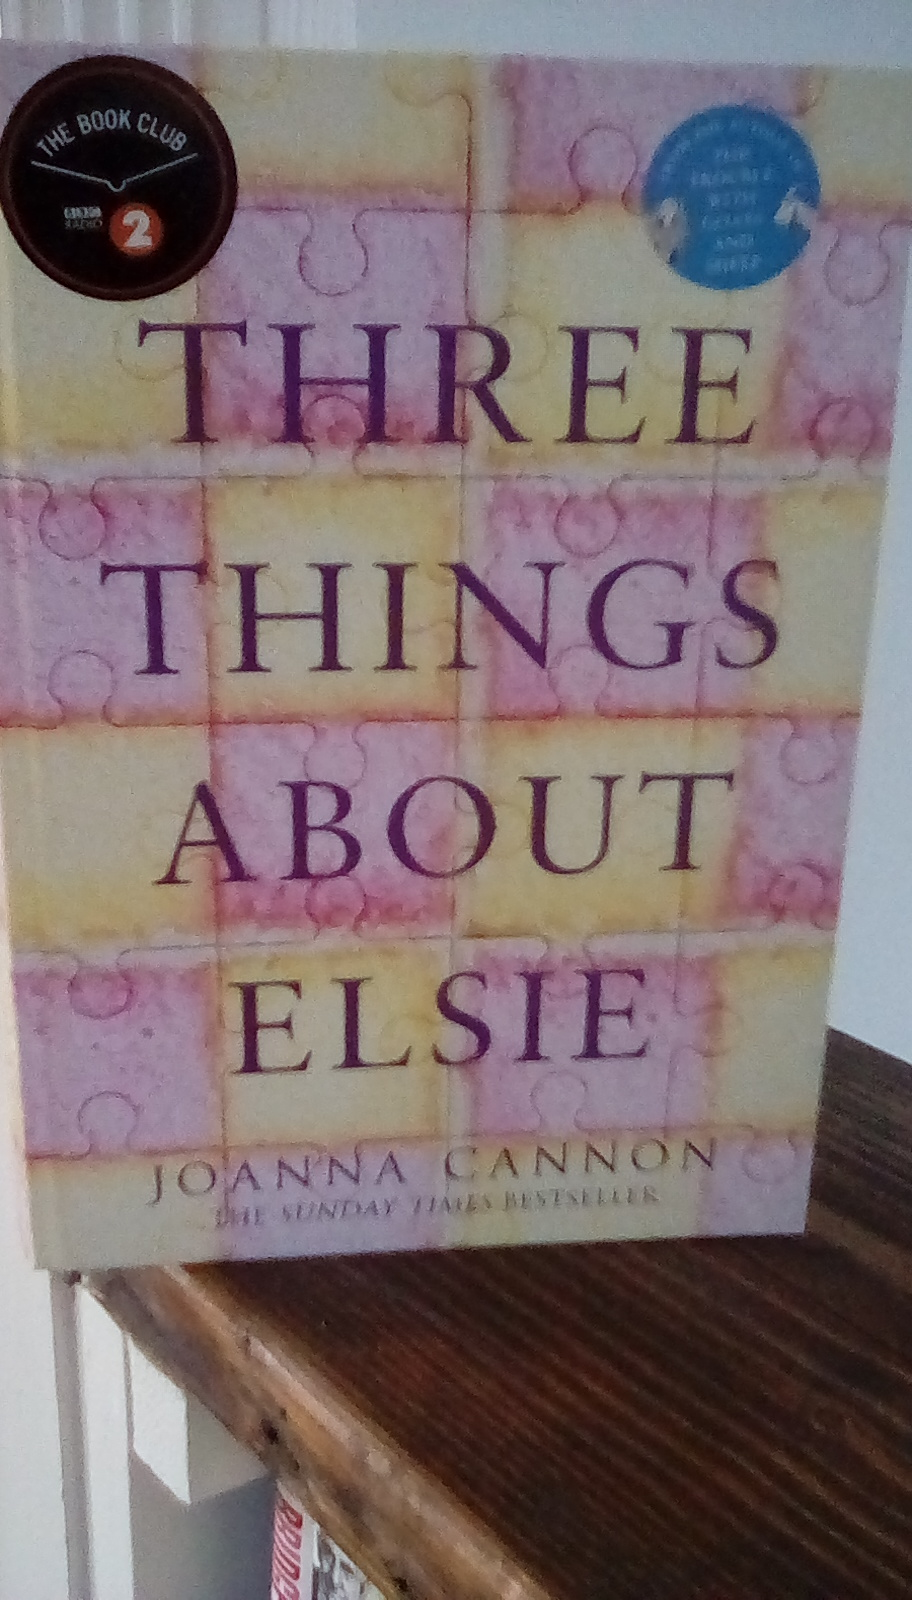 Three Things About Elsie by Joanna Cannon – AReview